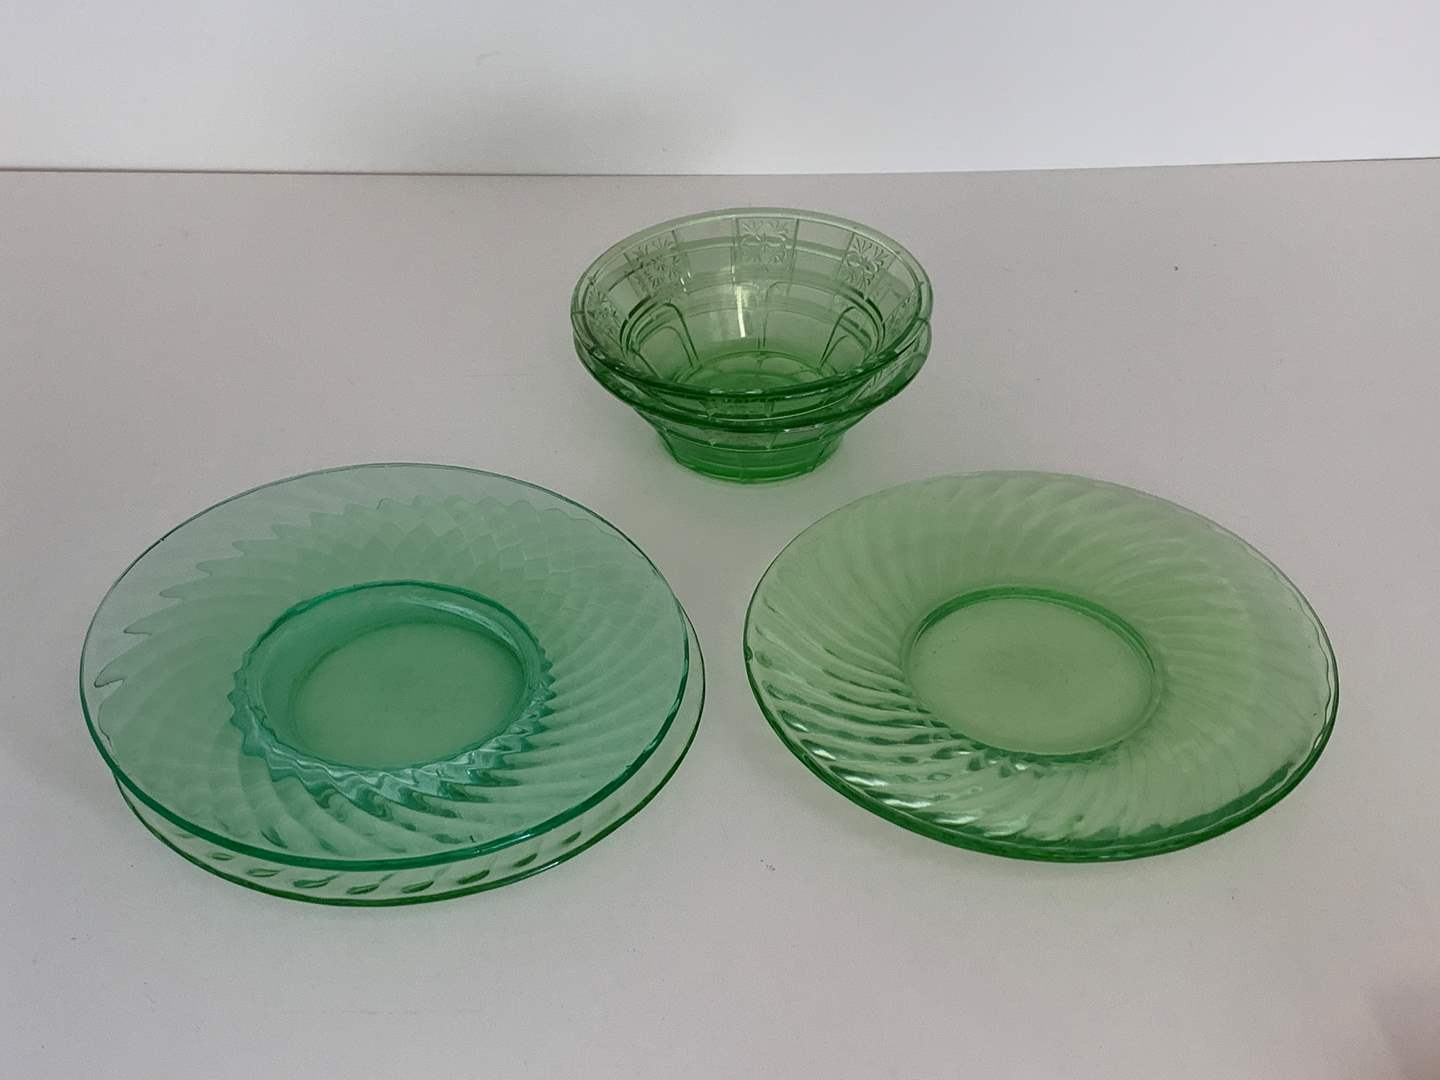 Lot # 52 Lot of Glass Plates and Bowls (main image)